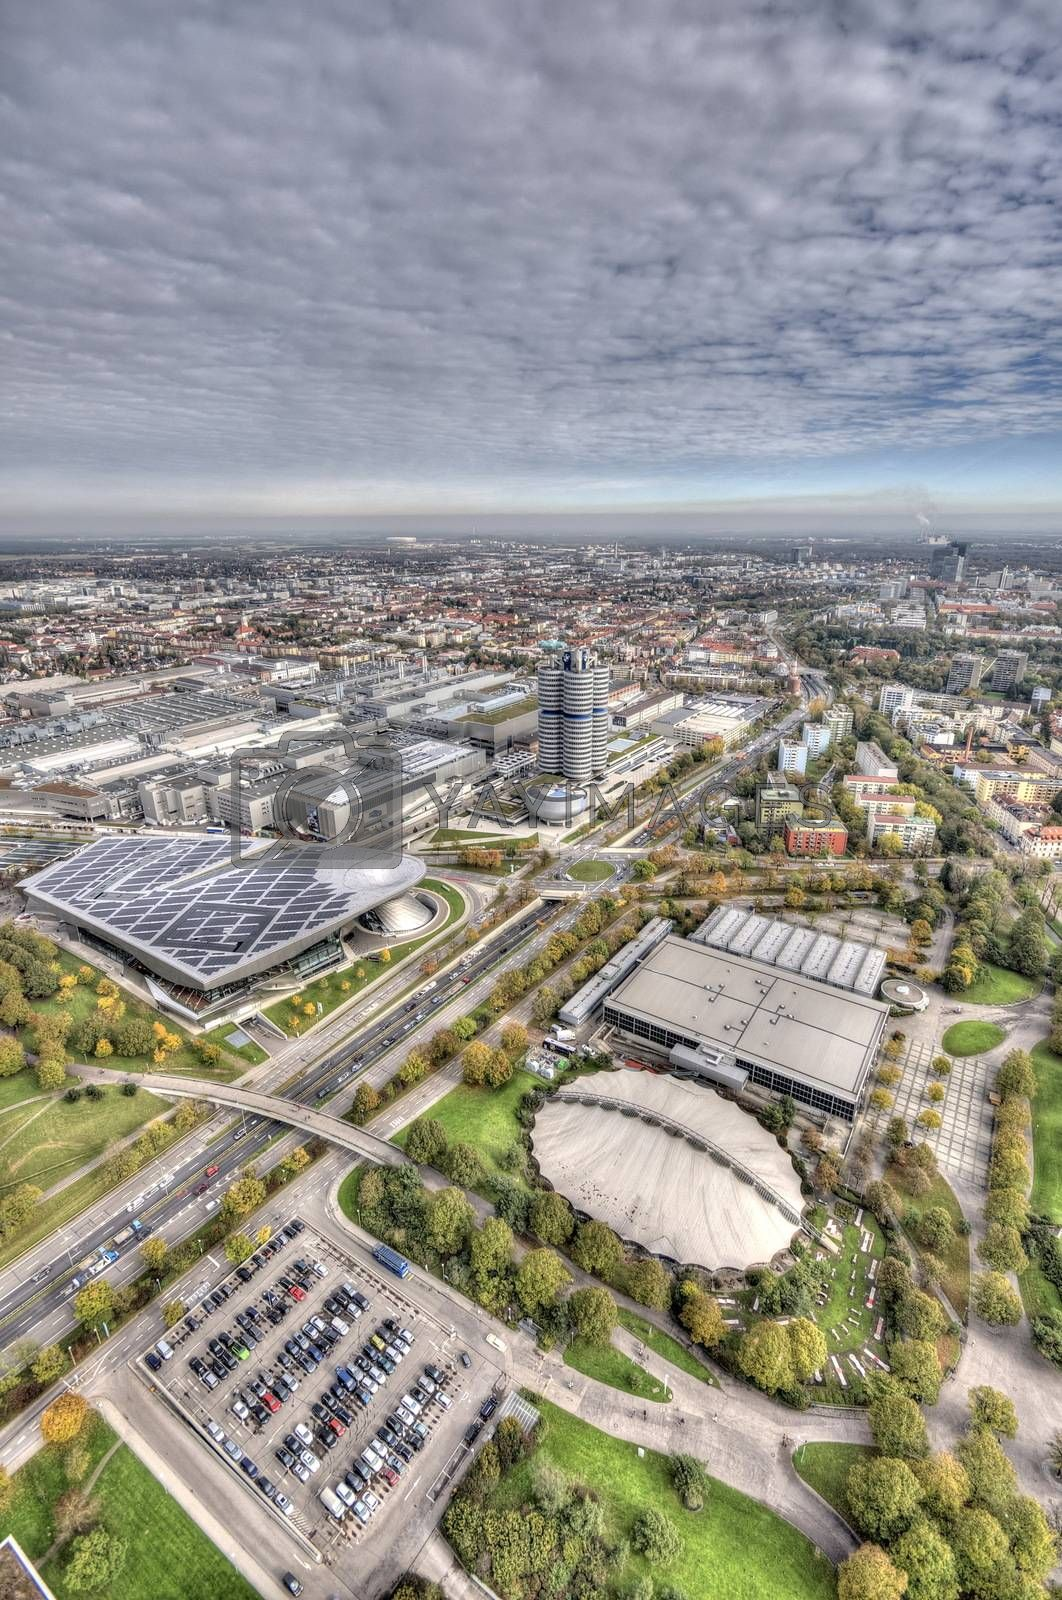 Royalty free image of Munich Olympiapark from the TV tover by anderm